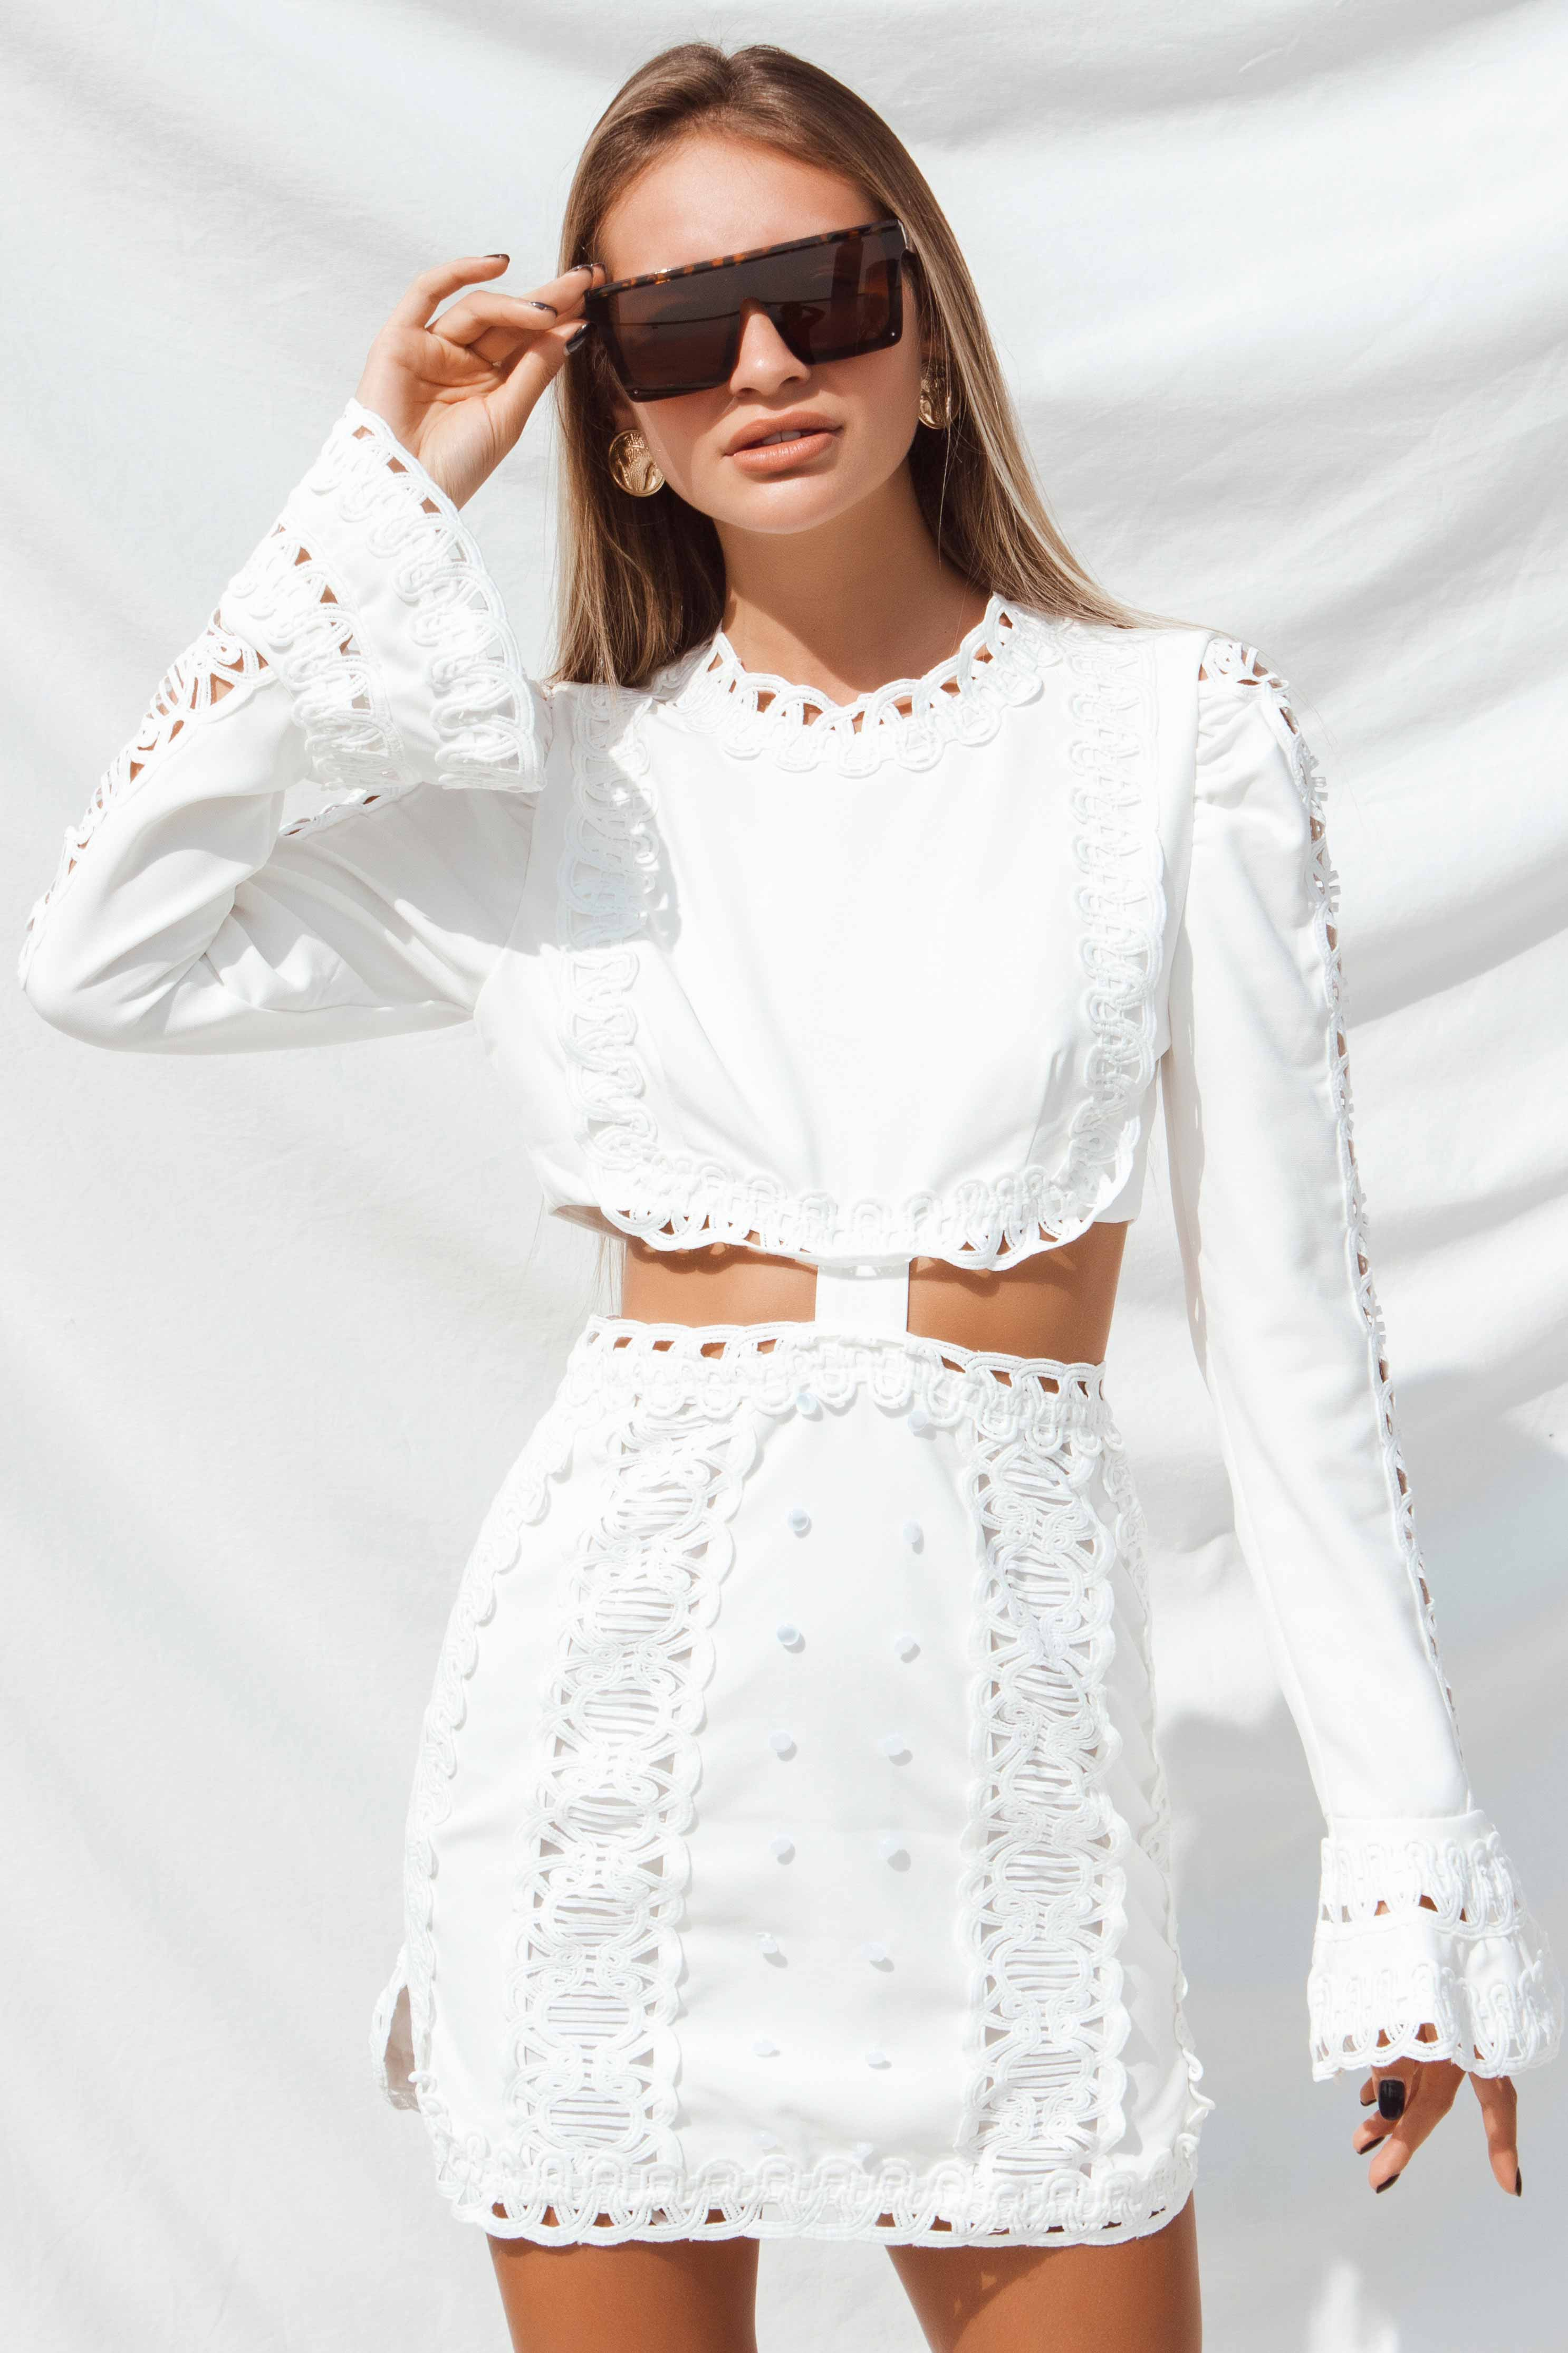 CAROLINA DRESS IN WHITE | Women's Online Shopping | CHICLEFRIQUE